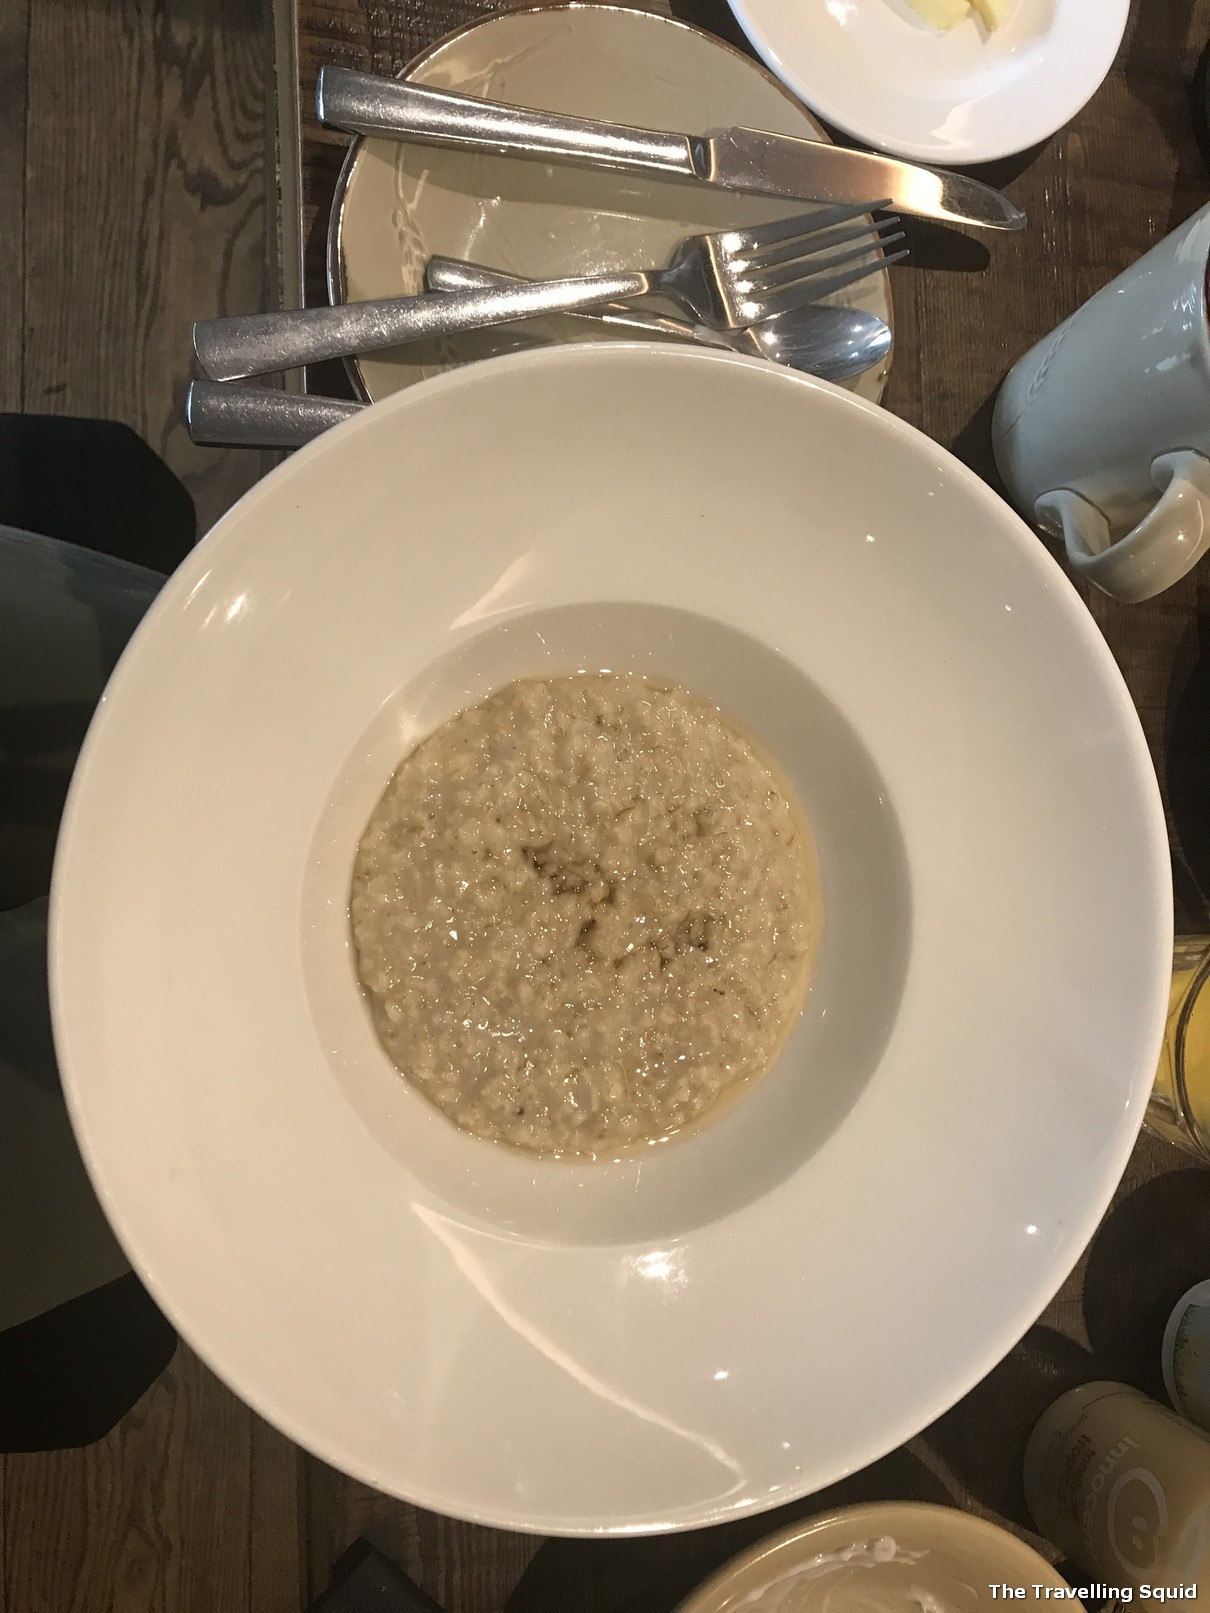 scottish porridge bosville hotel breakfast isle of skye